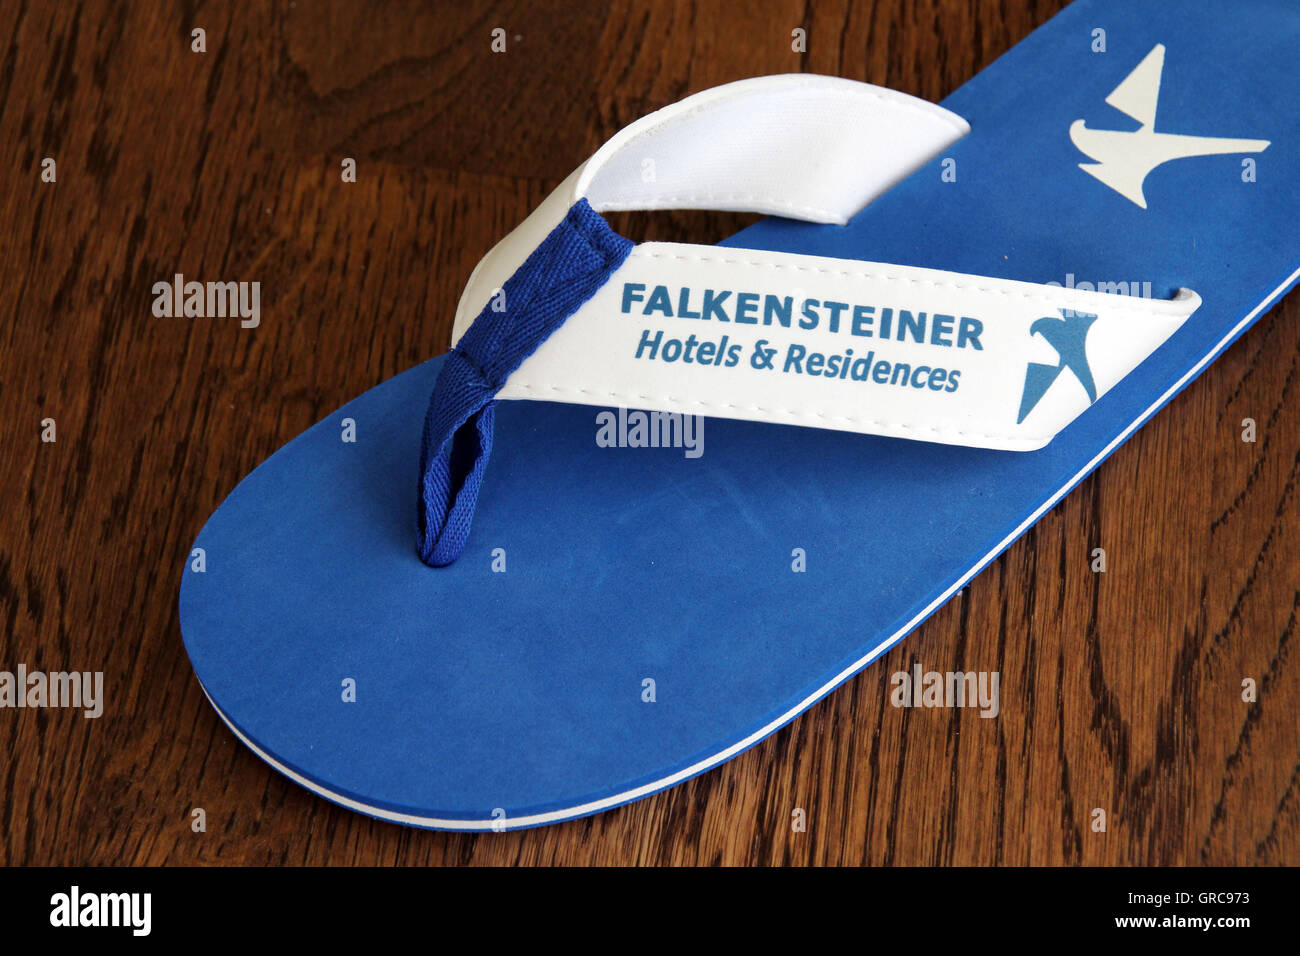 Flip Flop With Corporate Emblem Falkensteiner - Stock Image